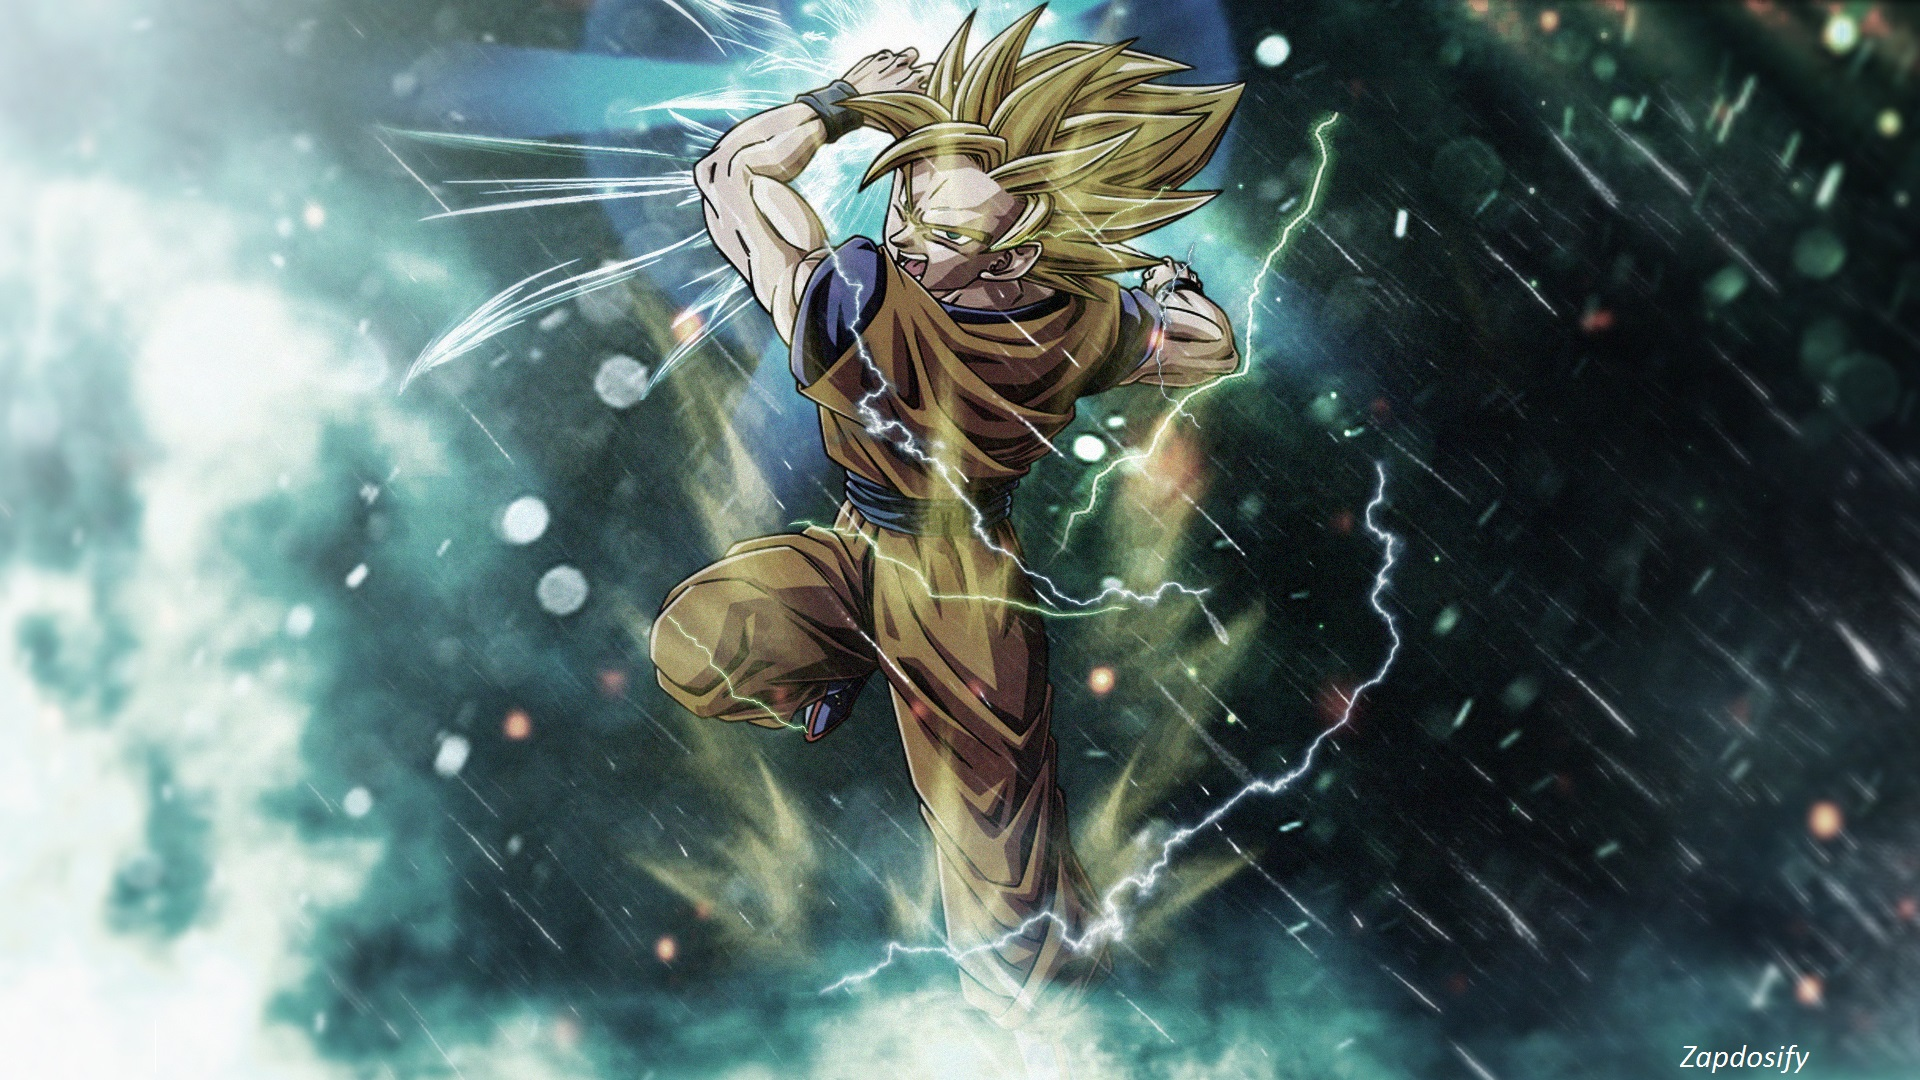 son goku (dragon ball), hd wallpaper - zerochan anime image board